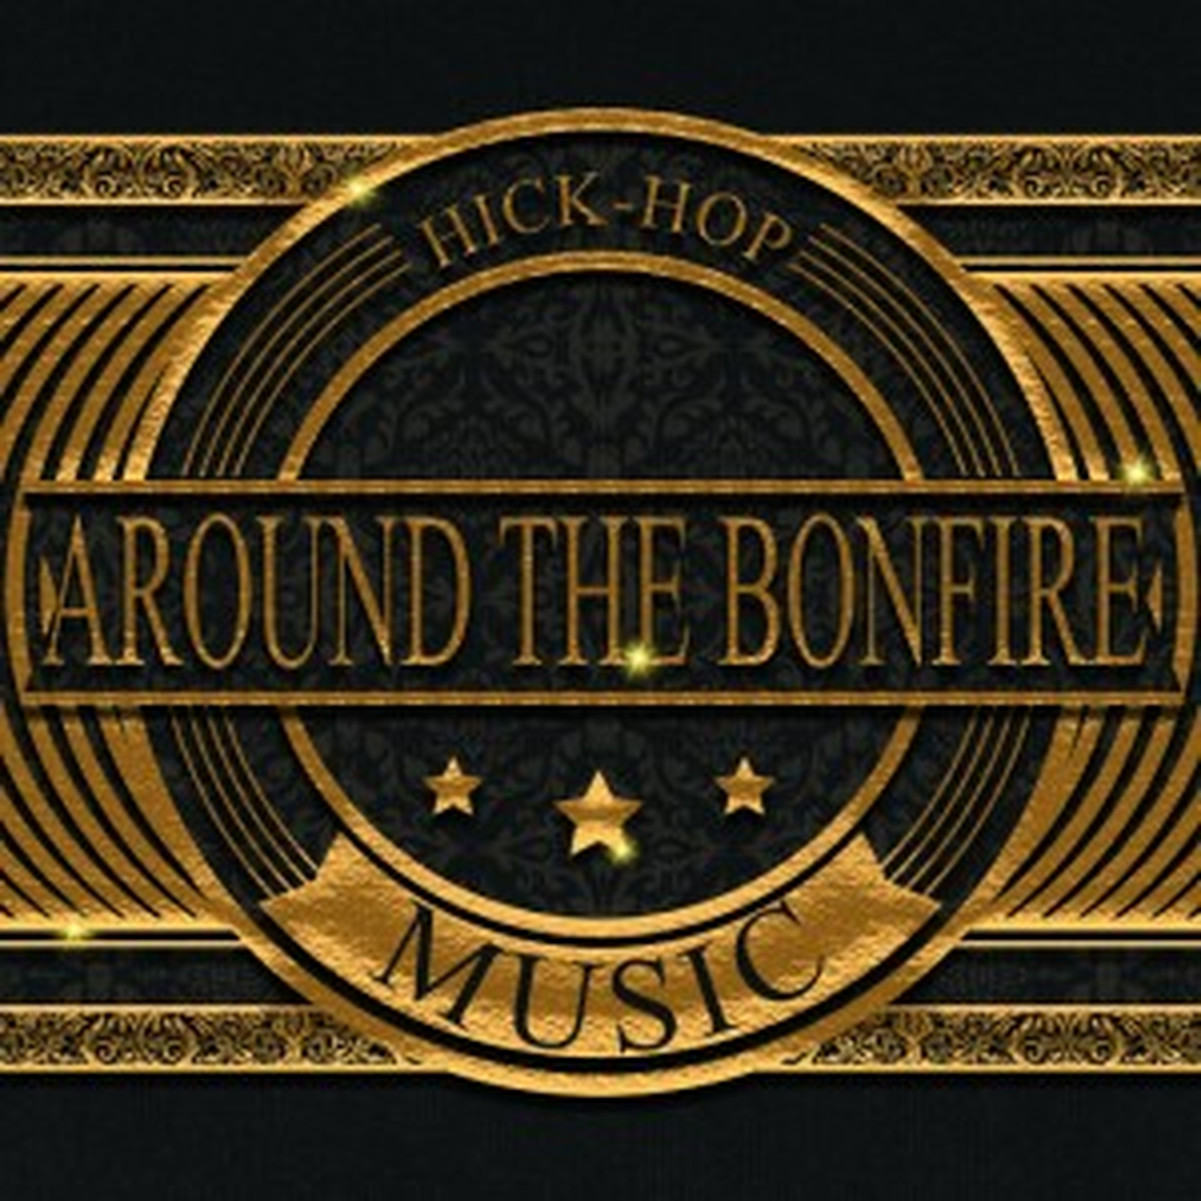 aroundthebonfire